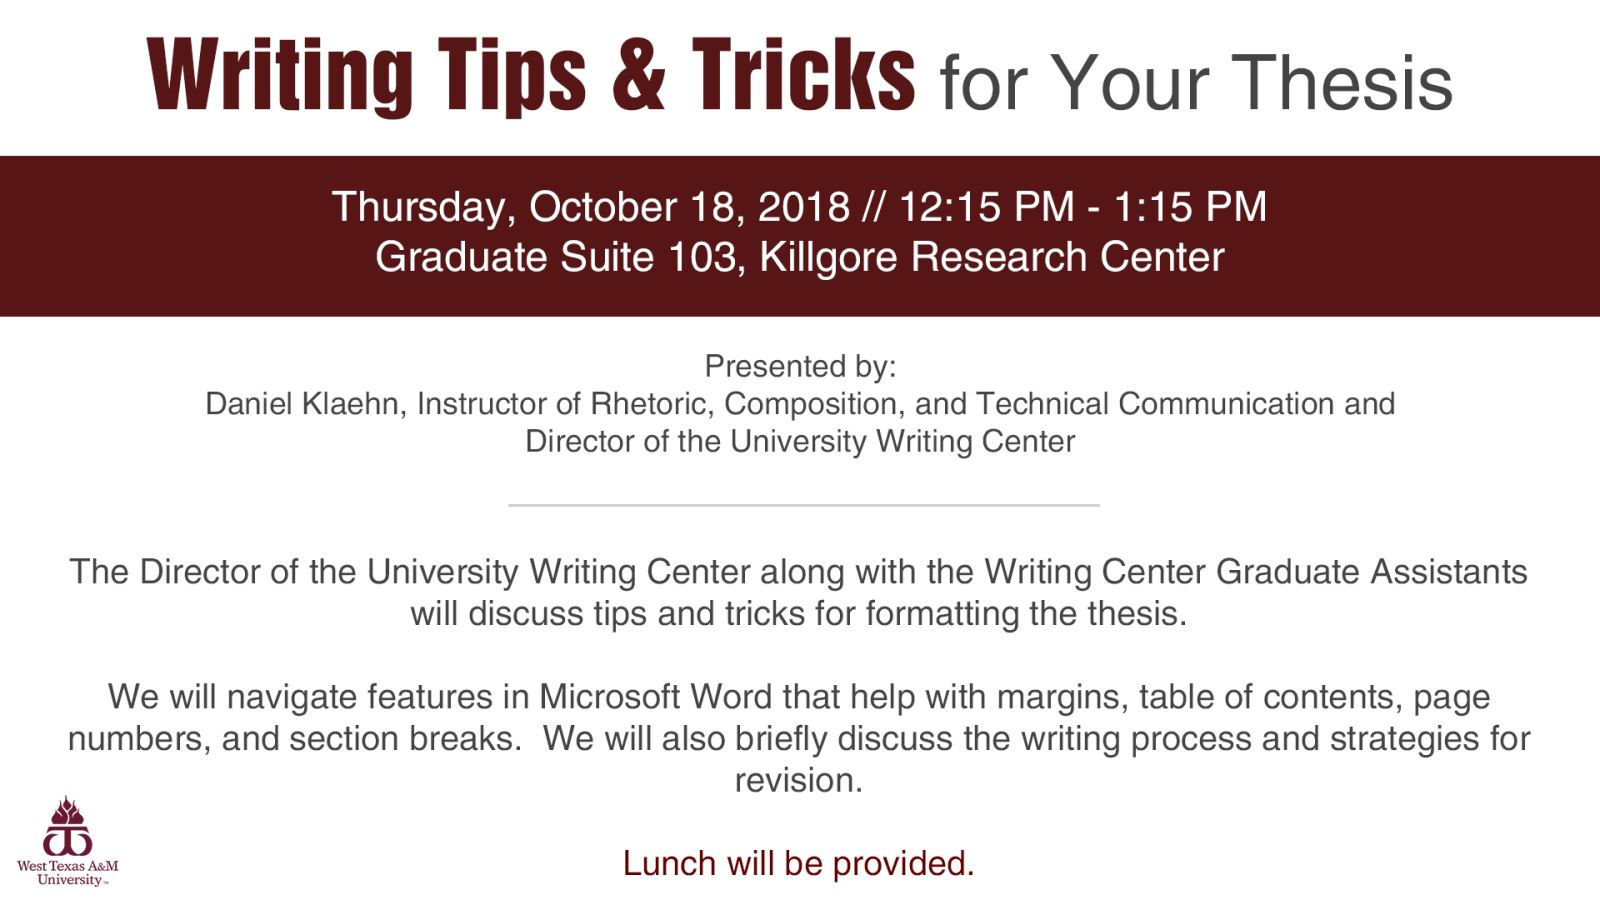 Writing Tips & Tricks for Your Thesis